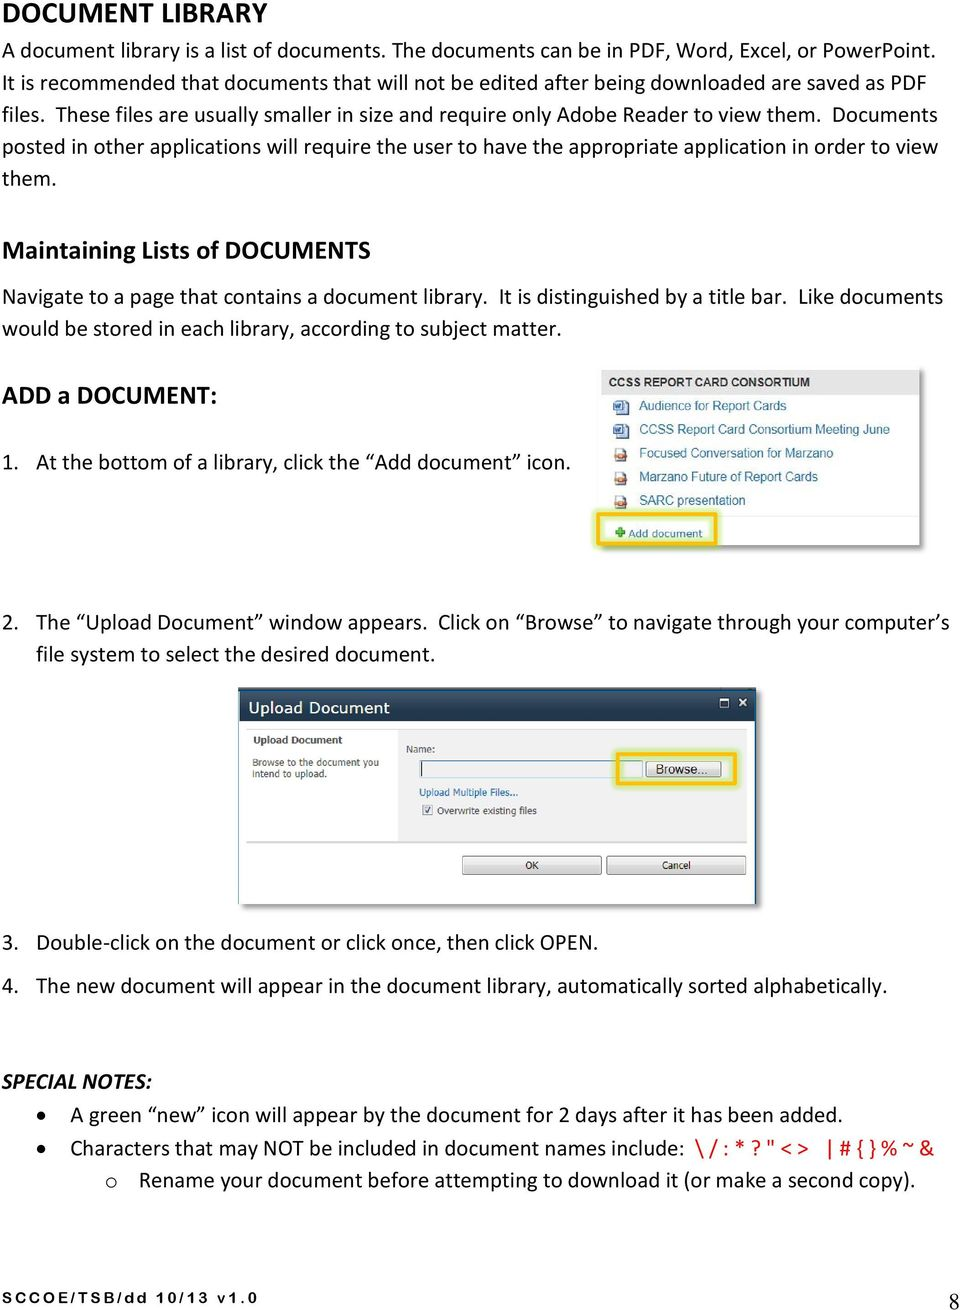 Documents posted in other applications will require the user to have the appropriate application in order to view them.